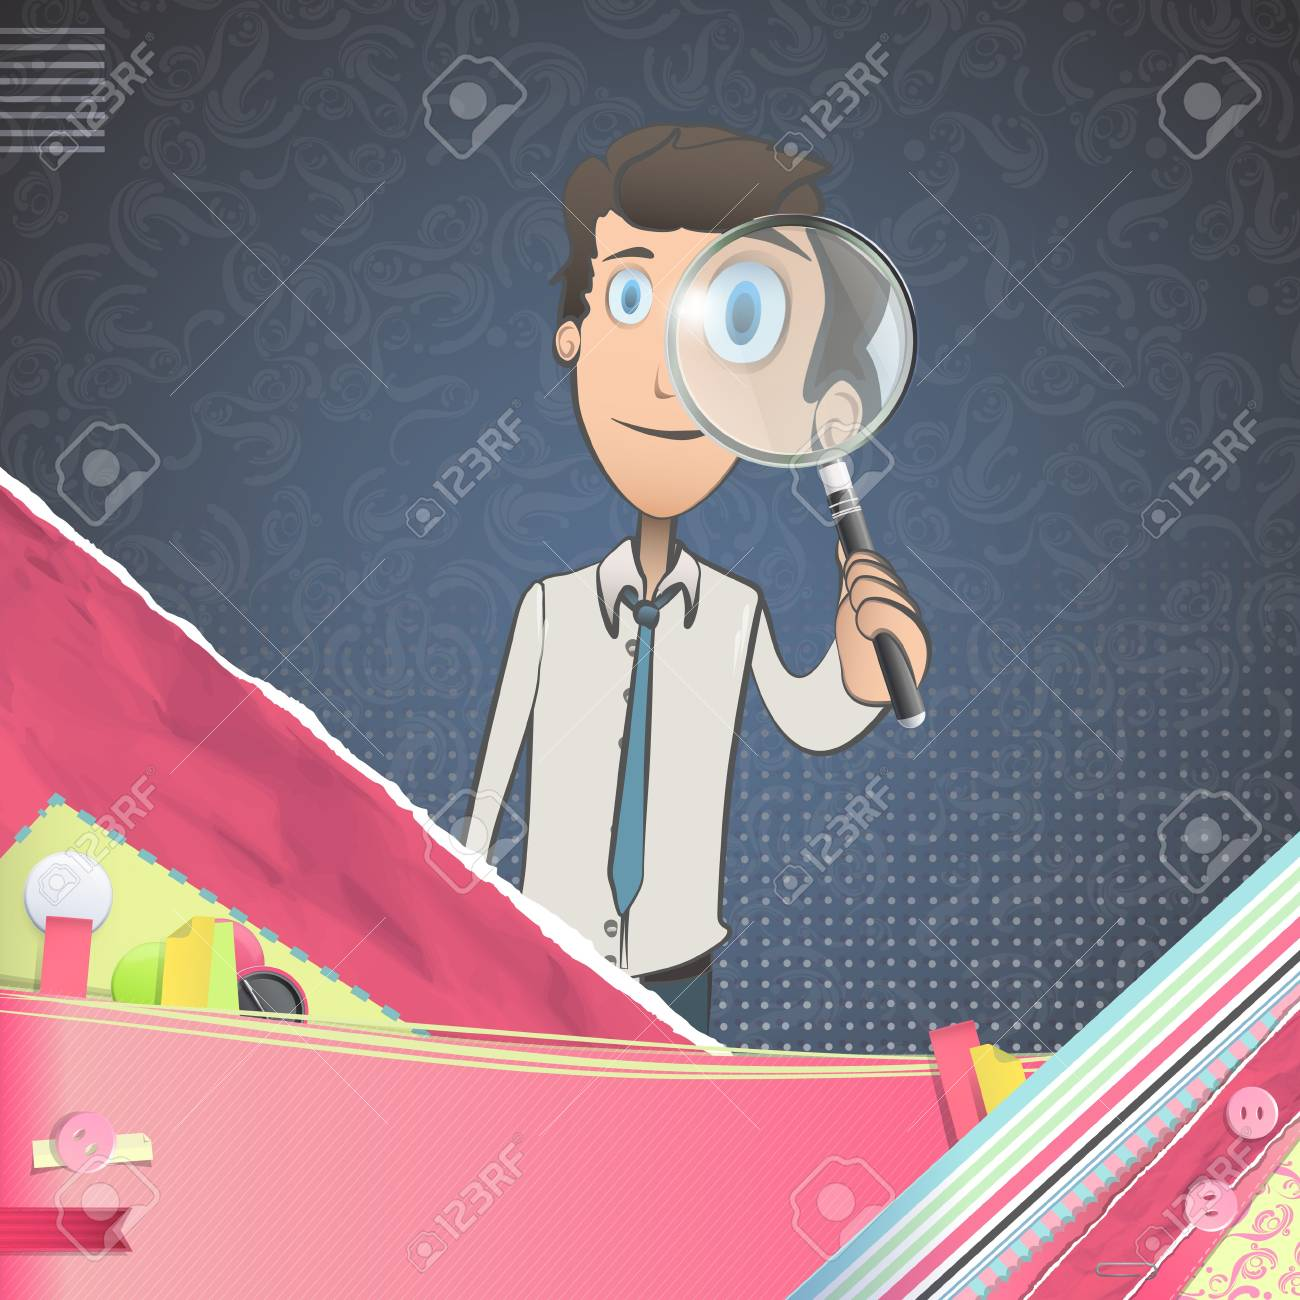 Business man with magnifying glass over vintage background.Illustration. Stock Vector - 21693423